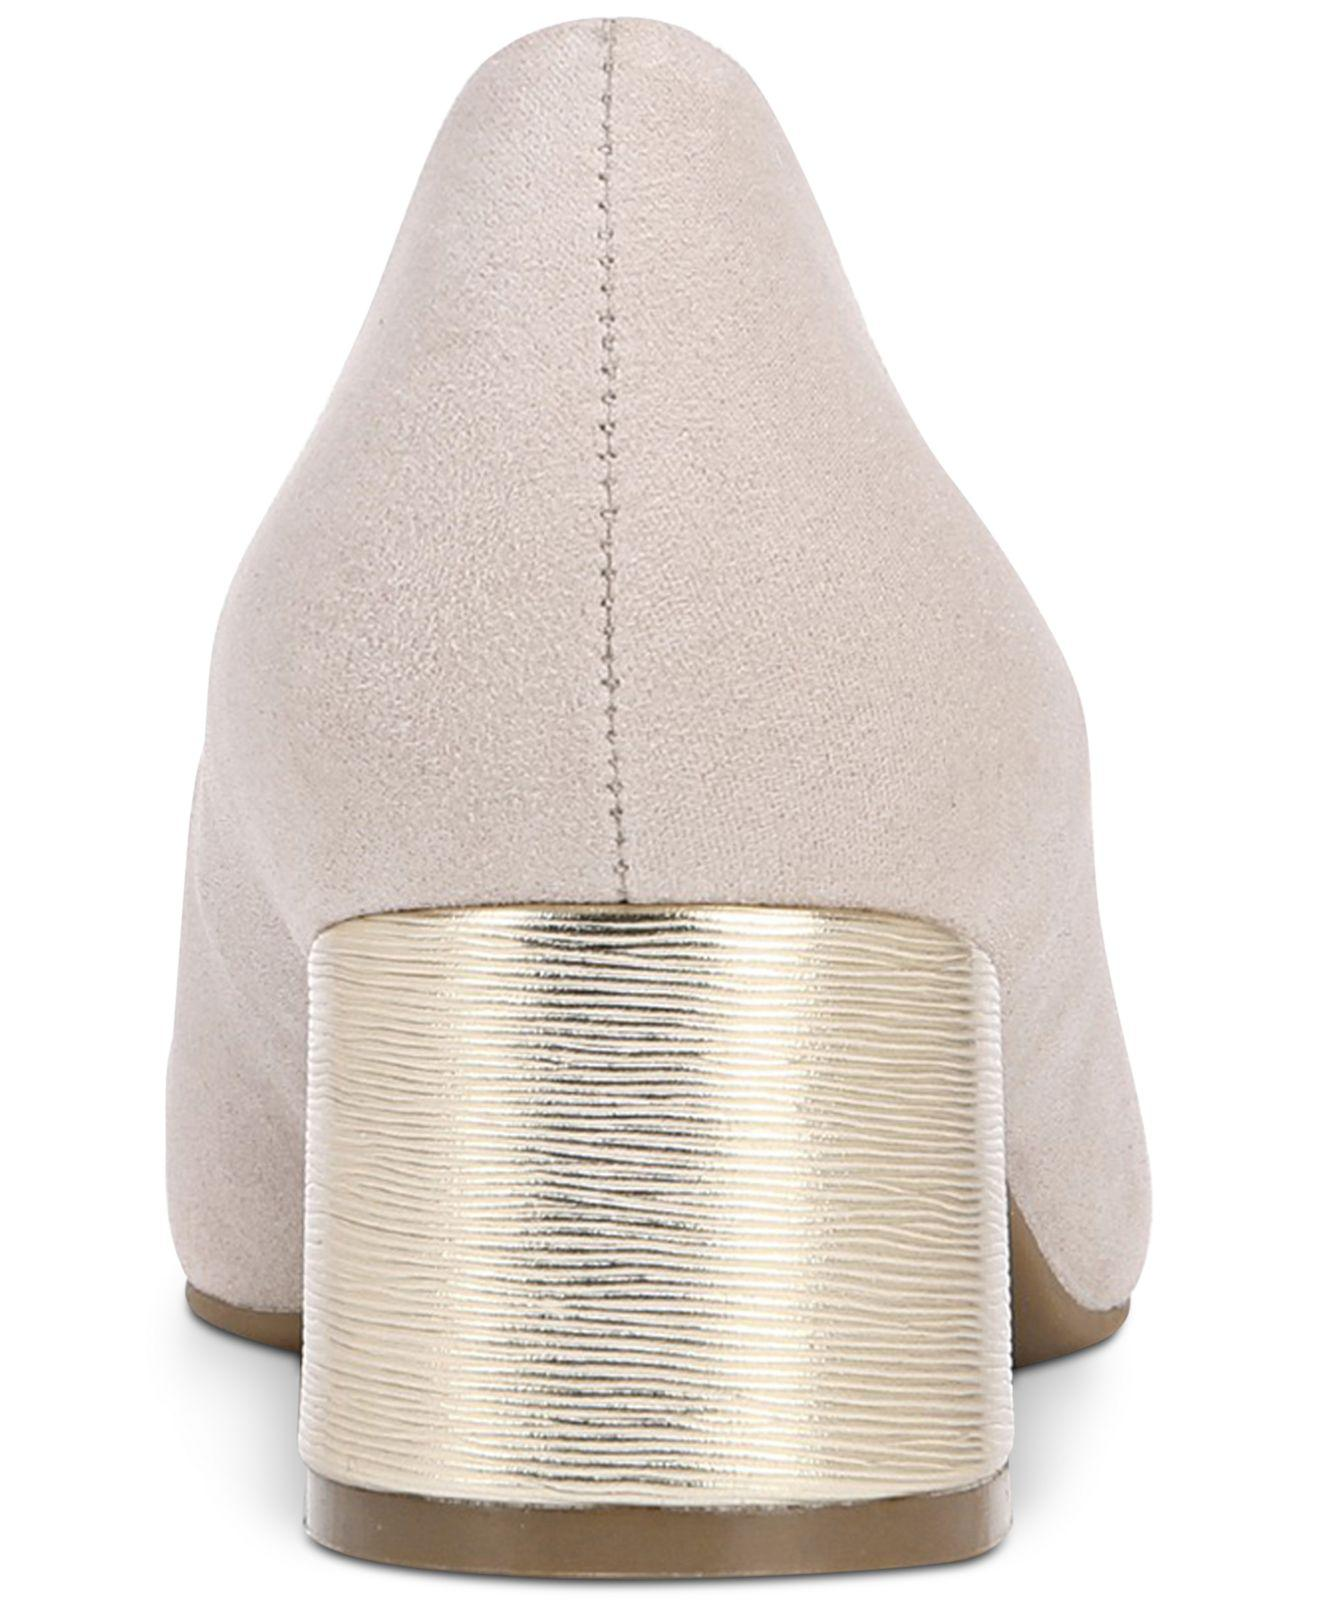 9850778257c5 Naturalizer - Gray Donelle Pumps - Lyst. View fullscreen